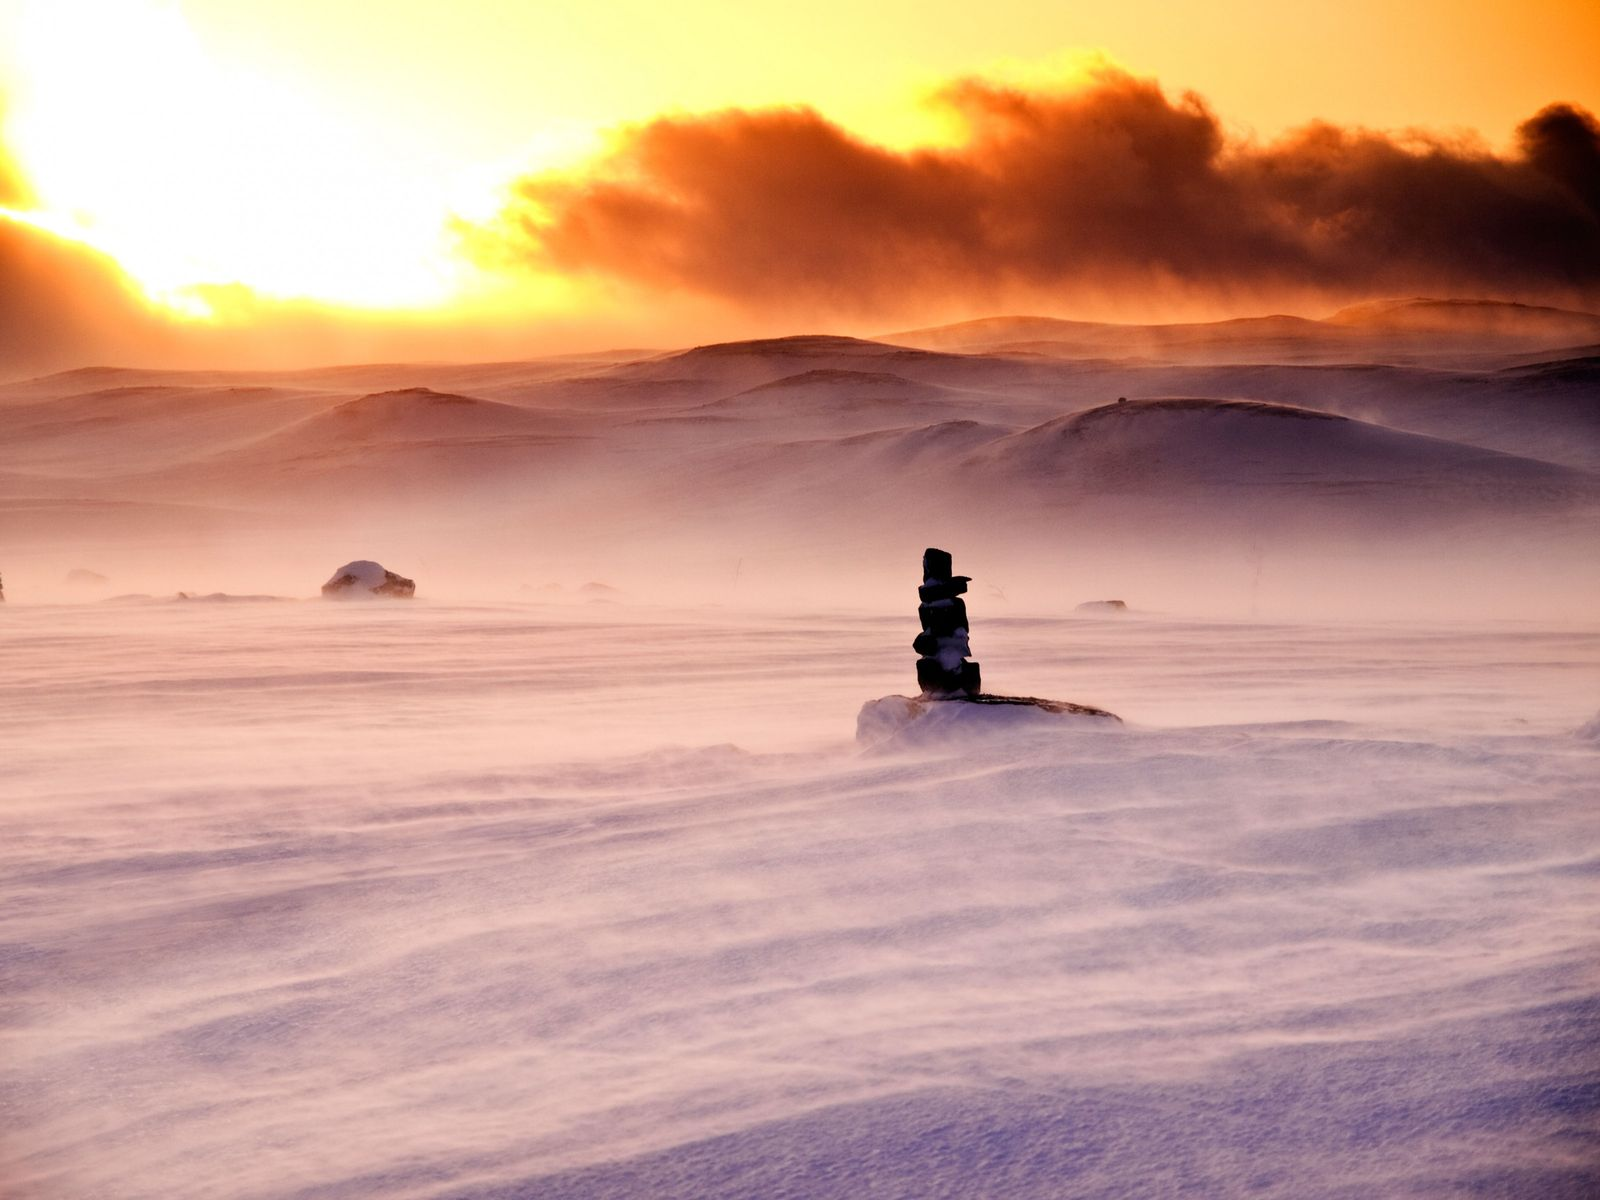 The Hardangervidda plateau in Norway was the location used to simulate the ice planet of Hoth. ...